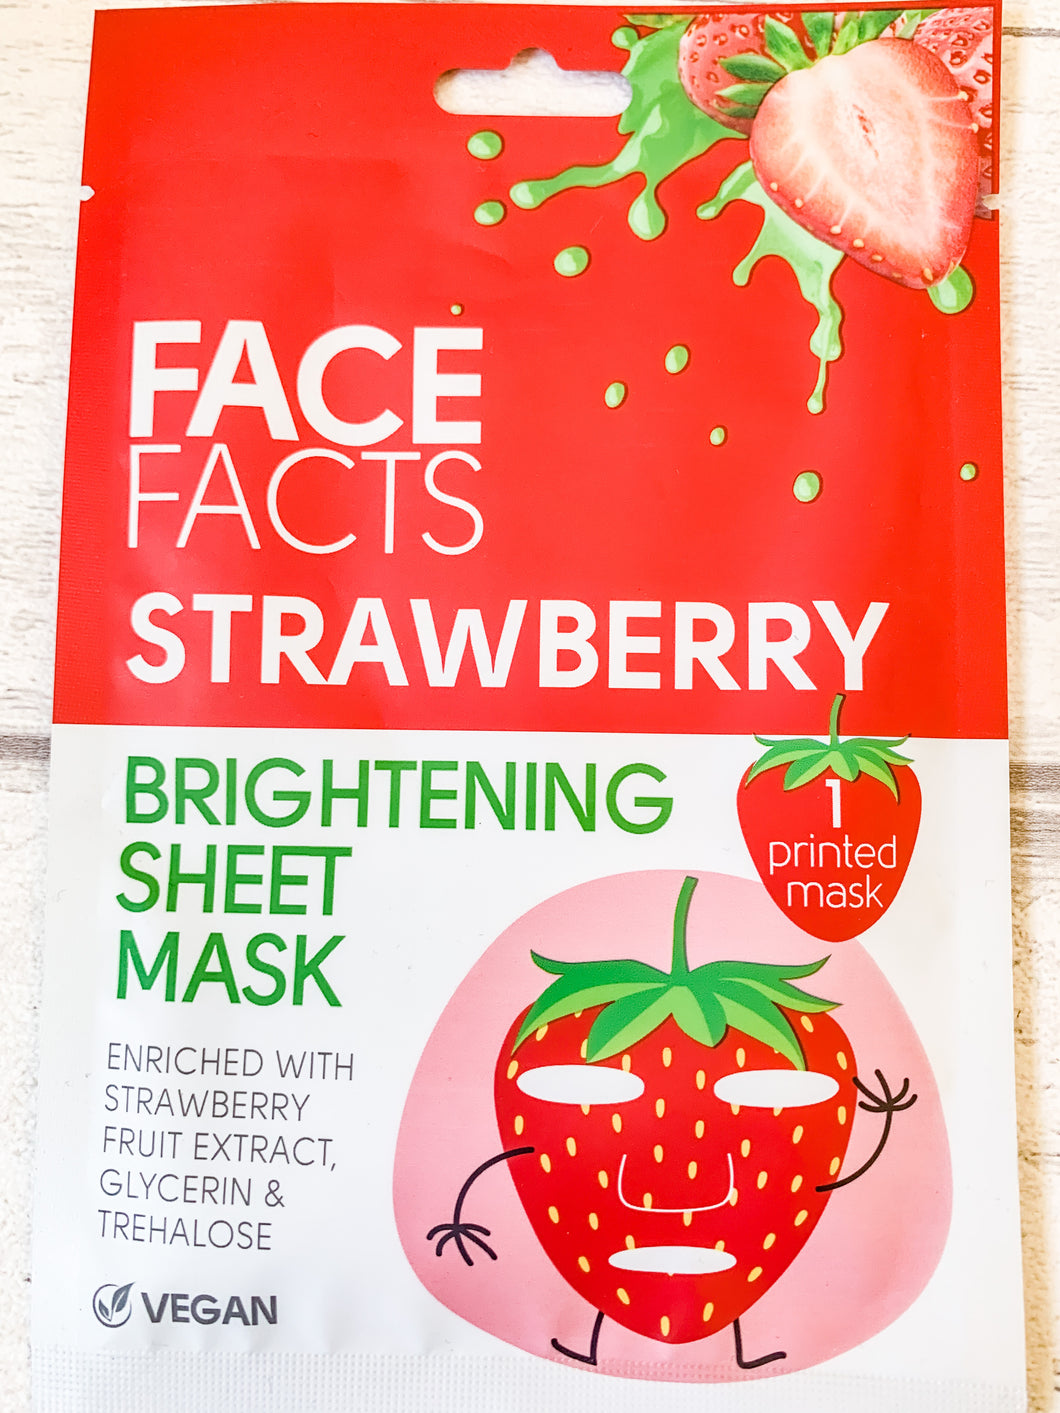 Face Facts Strawberry Sheet Face Mask